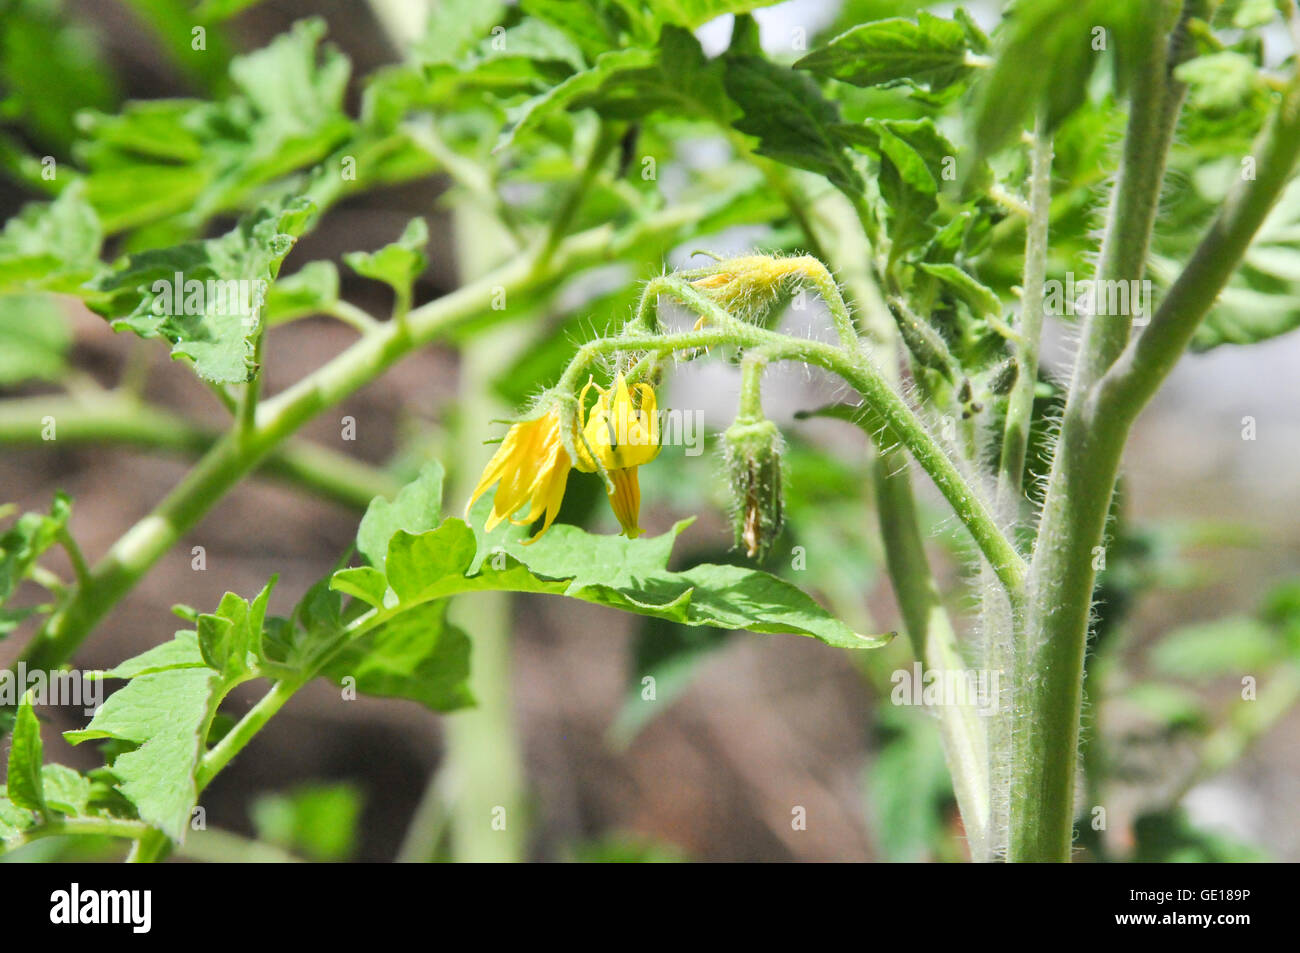 Tomato plant with yellow flowers grows in a garden stock photo tomato plant with yellow flowers grows in a garden mightylinksfo